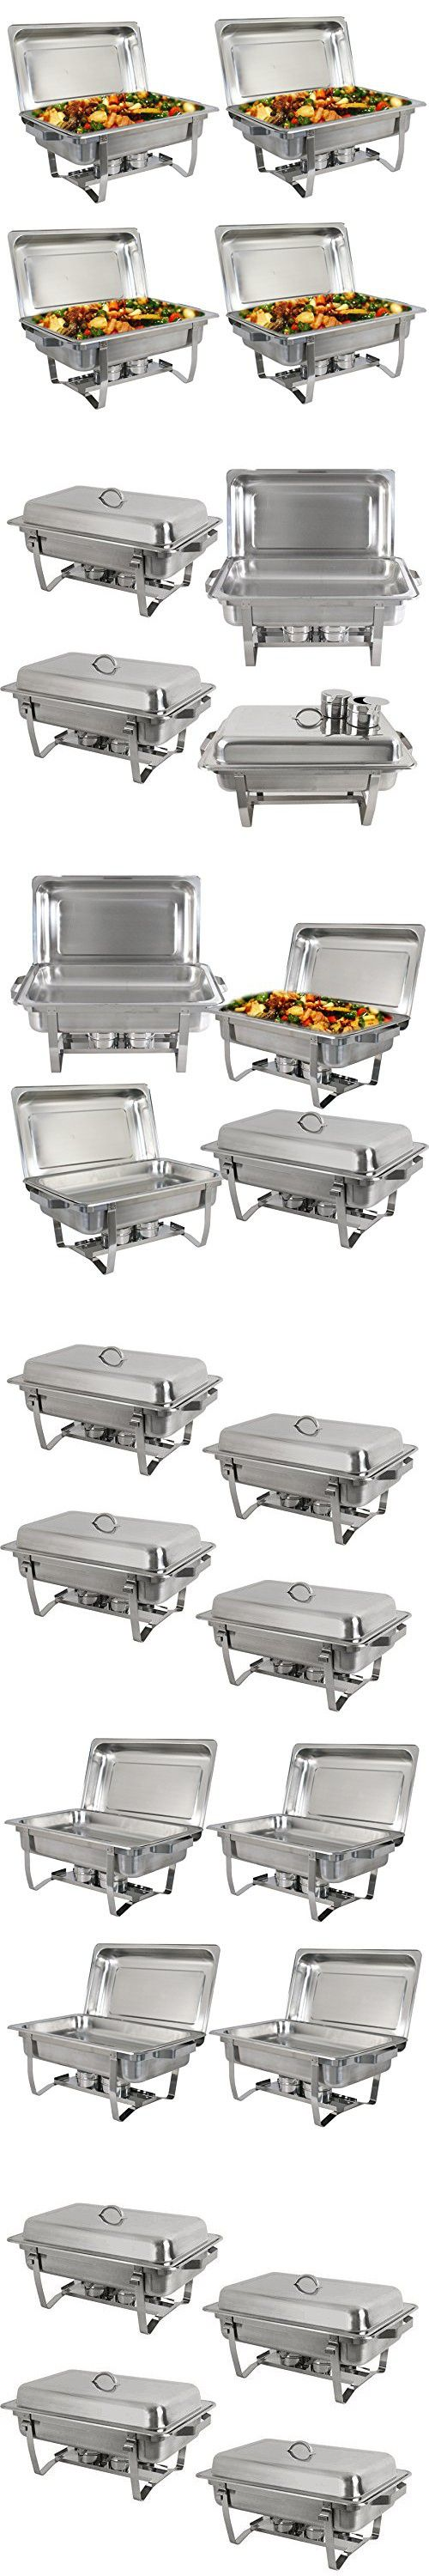 F2C Four (4) Pack of 8 Quart Stainless Steel chafingdish Rectangular Chafing Dish Full Size New (4 pack)